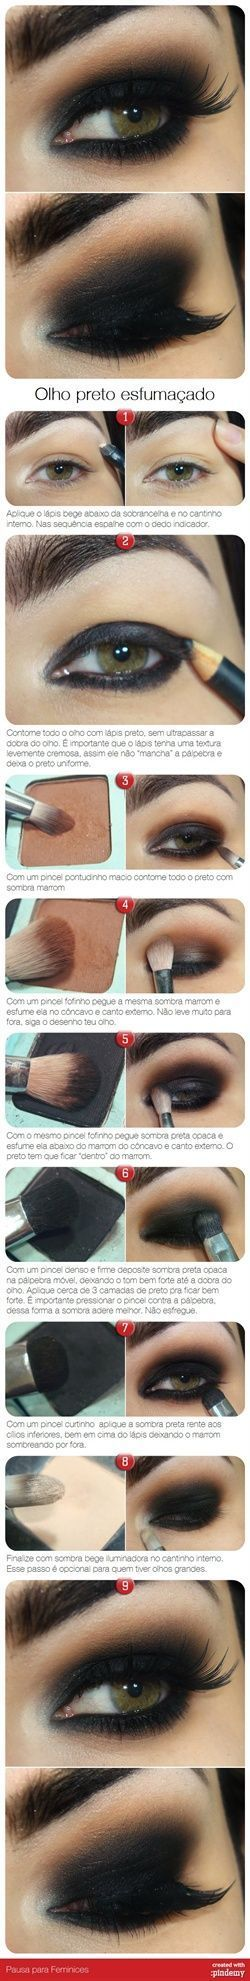 Dark Smokey Eye Makeup Tutorial Pictures, Photos, and Images for Facebook, Tumbl...